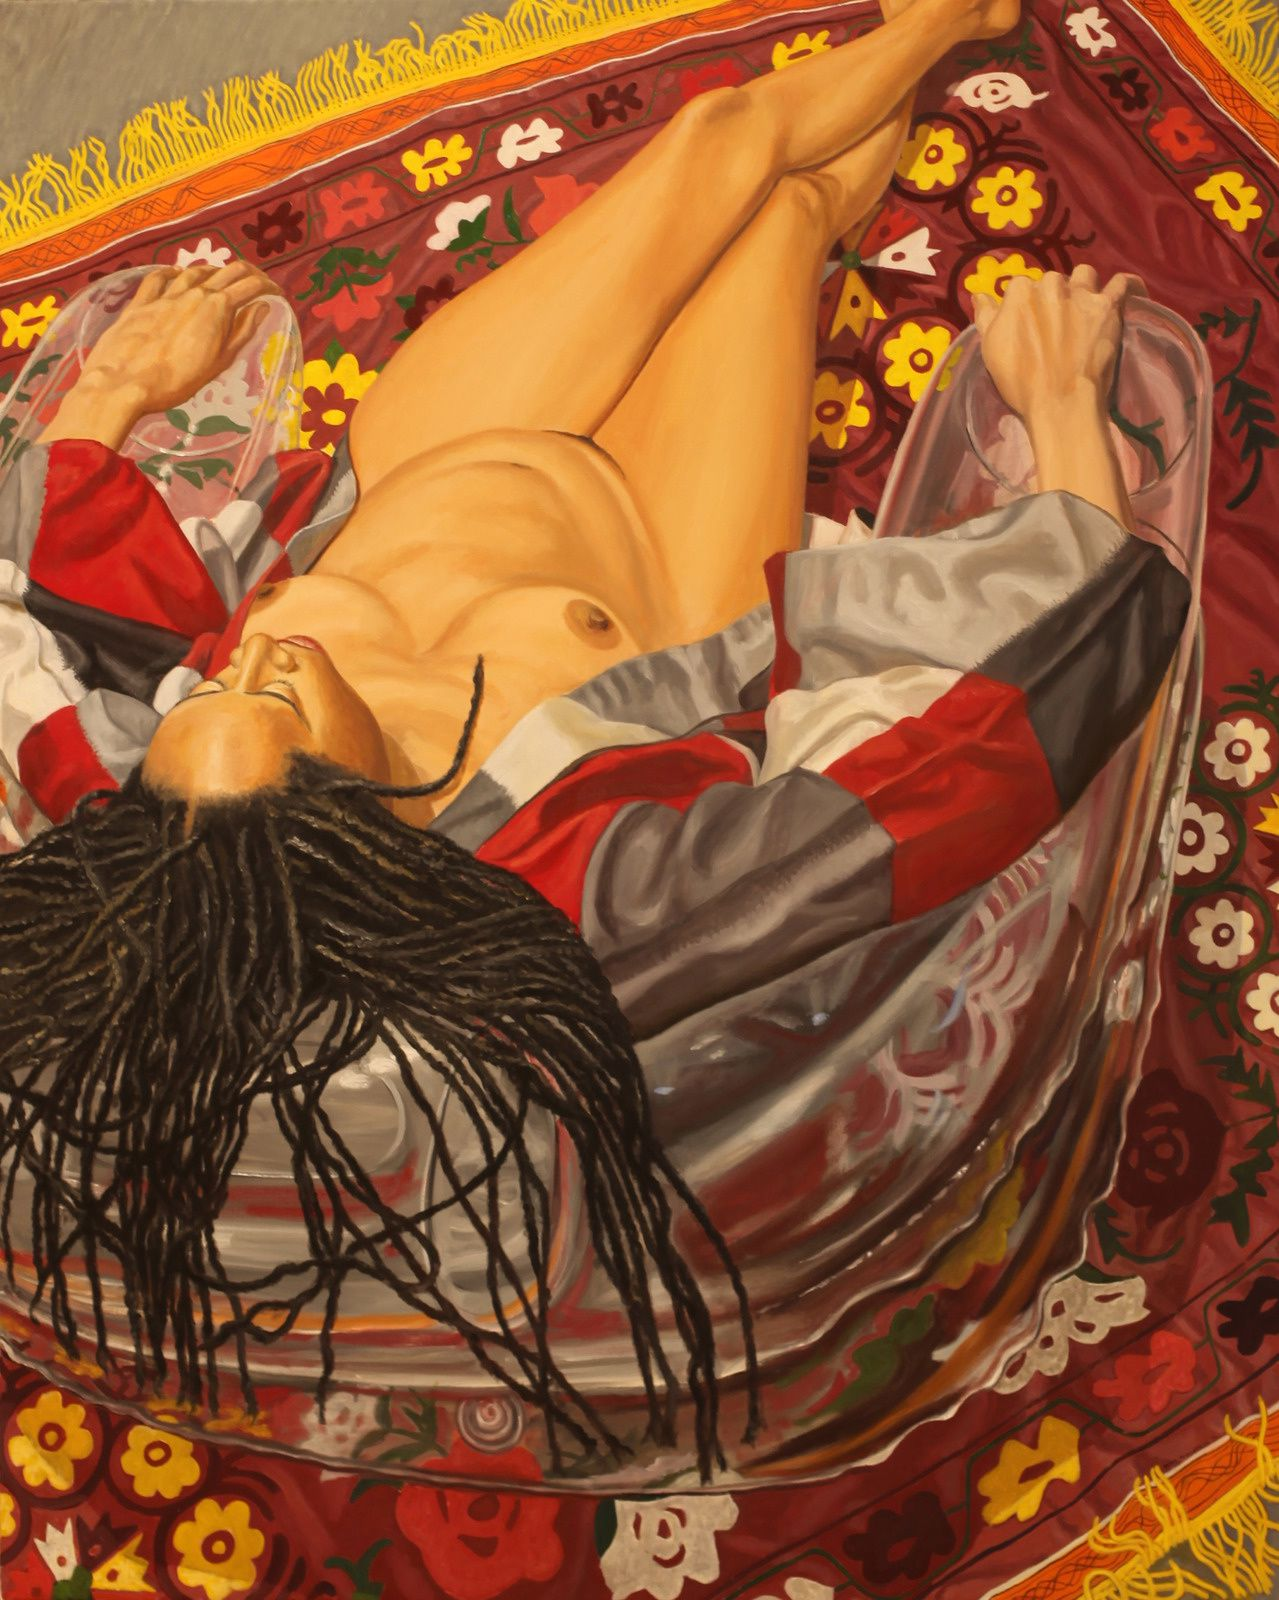 """""""Model with Kimono on clear Plastic Chair with Floral Rug"""", 2011  de Philip PEARLSTEIN - Courtesy Galerie Templon © Photo Éric Simon"""